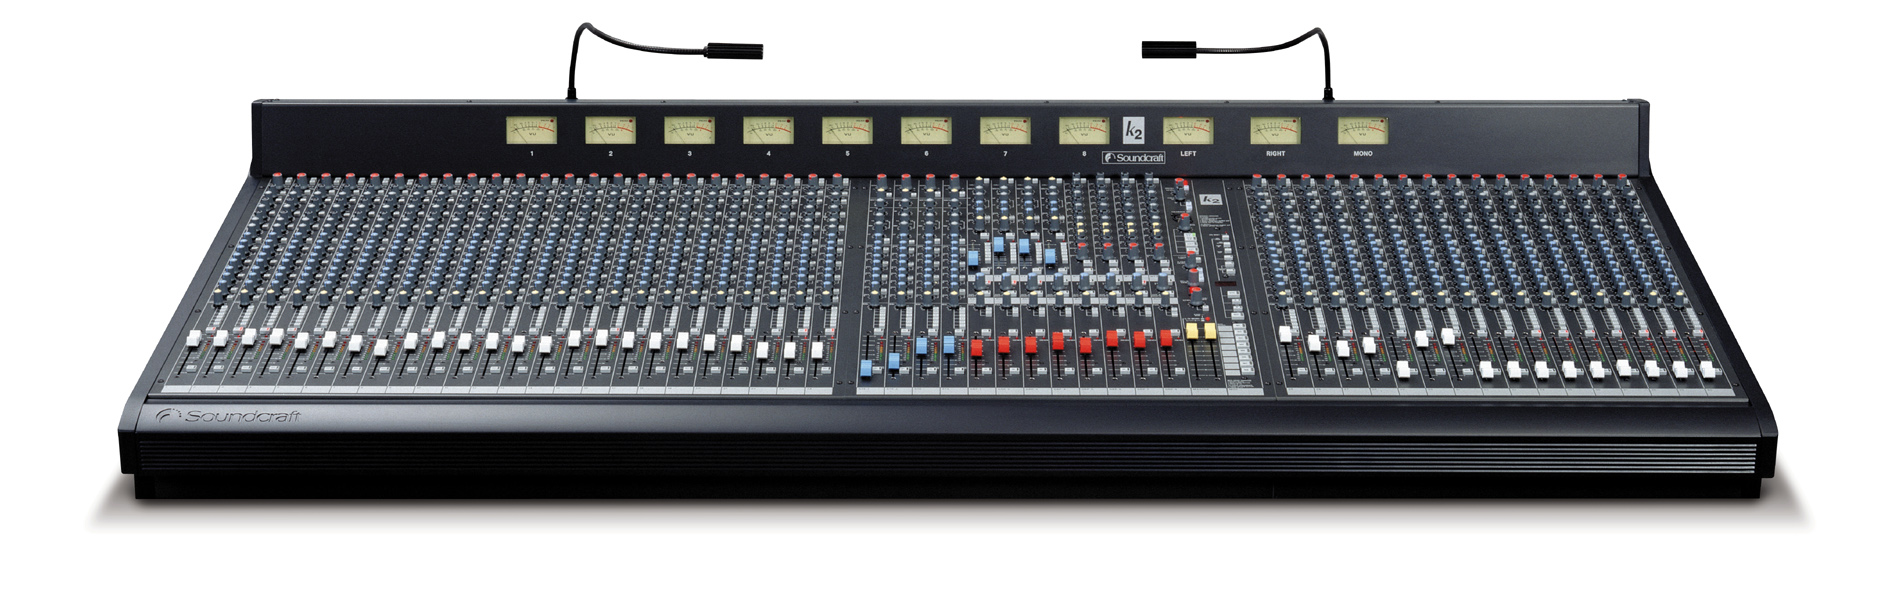 Chapter 7 Audio Processing Digital Sound Music Live Setup Diagram Related Keywords Suggestions Figure 719 Analog Mixing Console